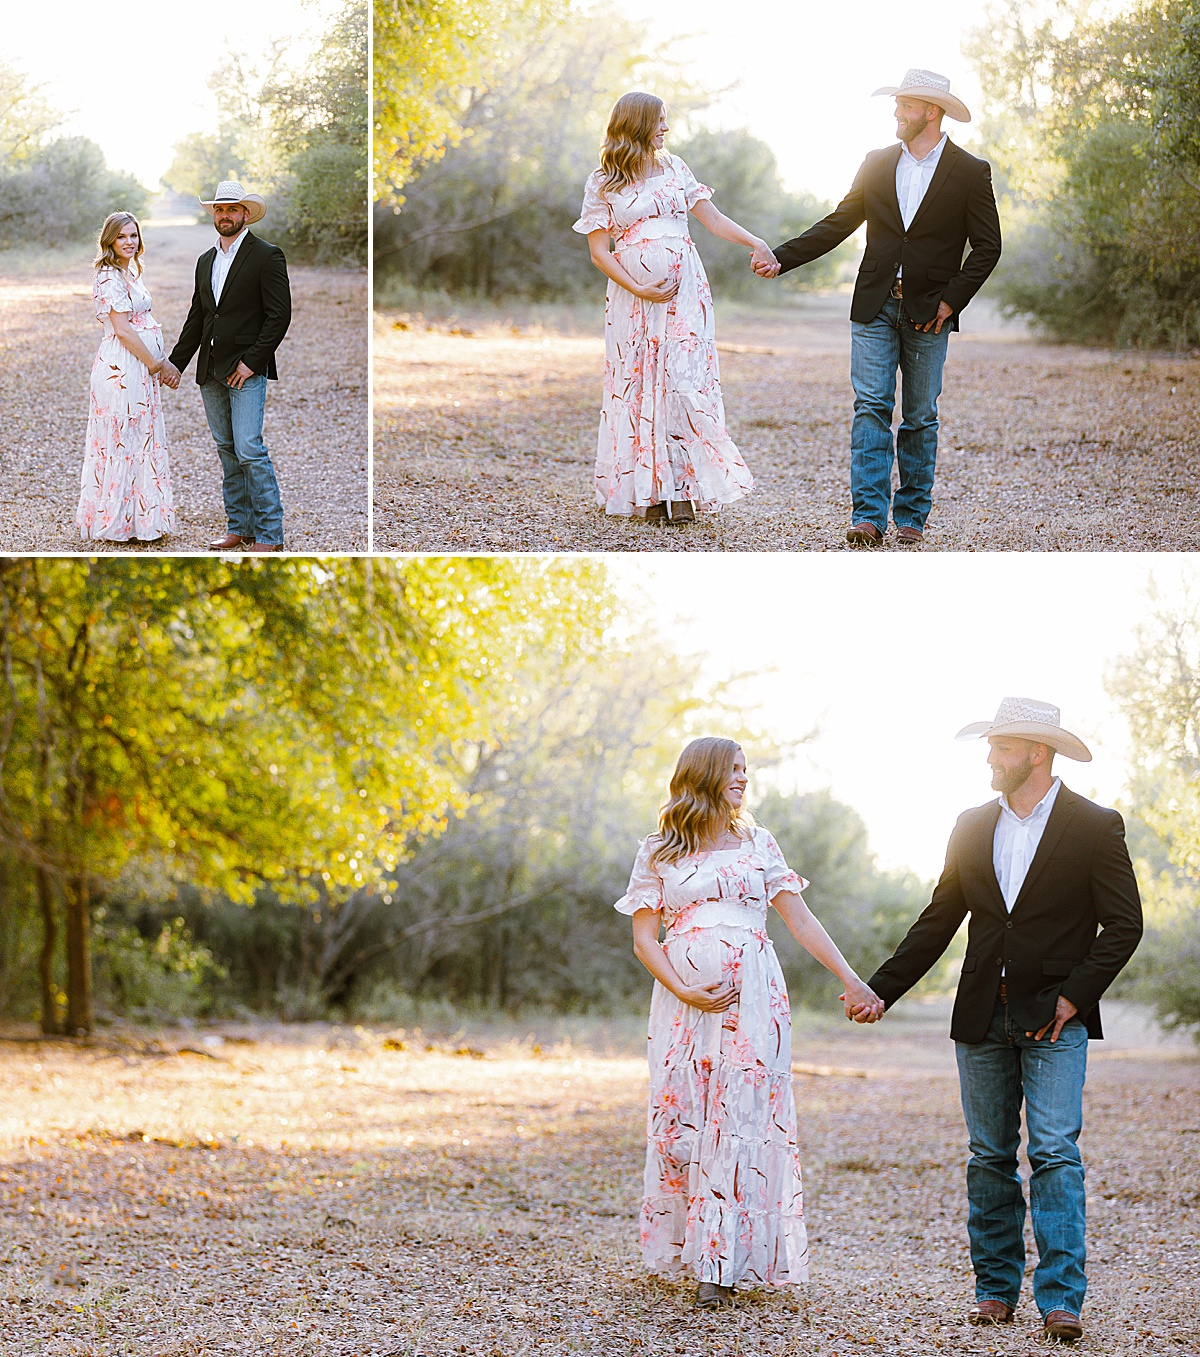 maternity-photo-session-lavernia-texas-carly-barton-photography_0031.jpg